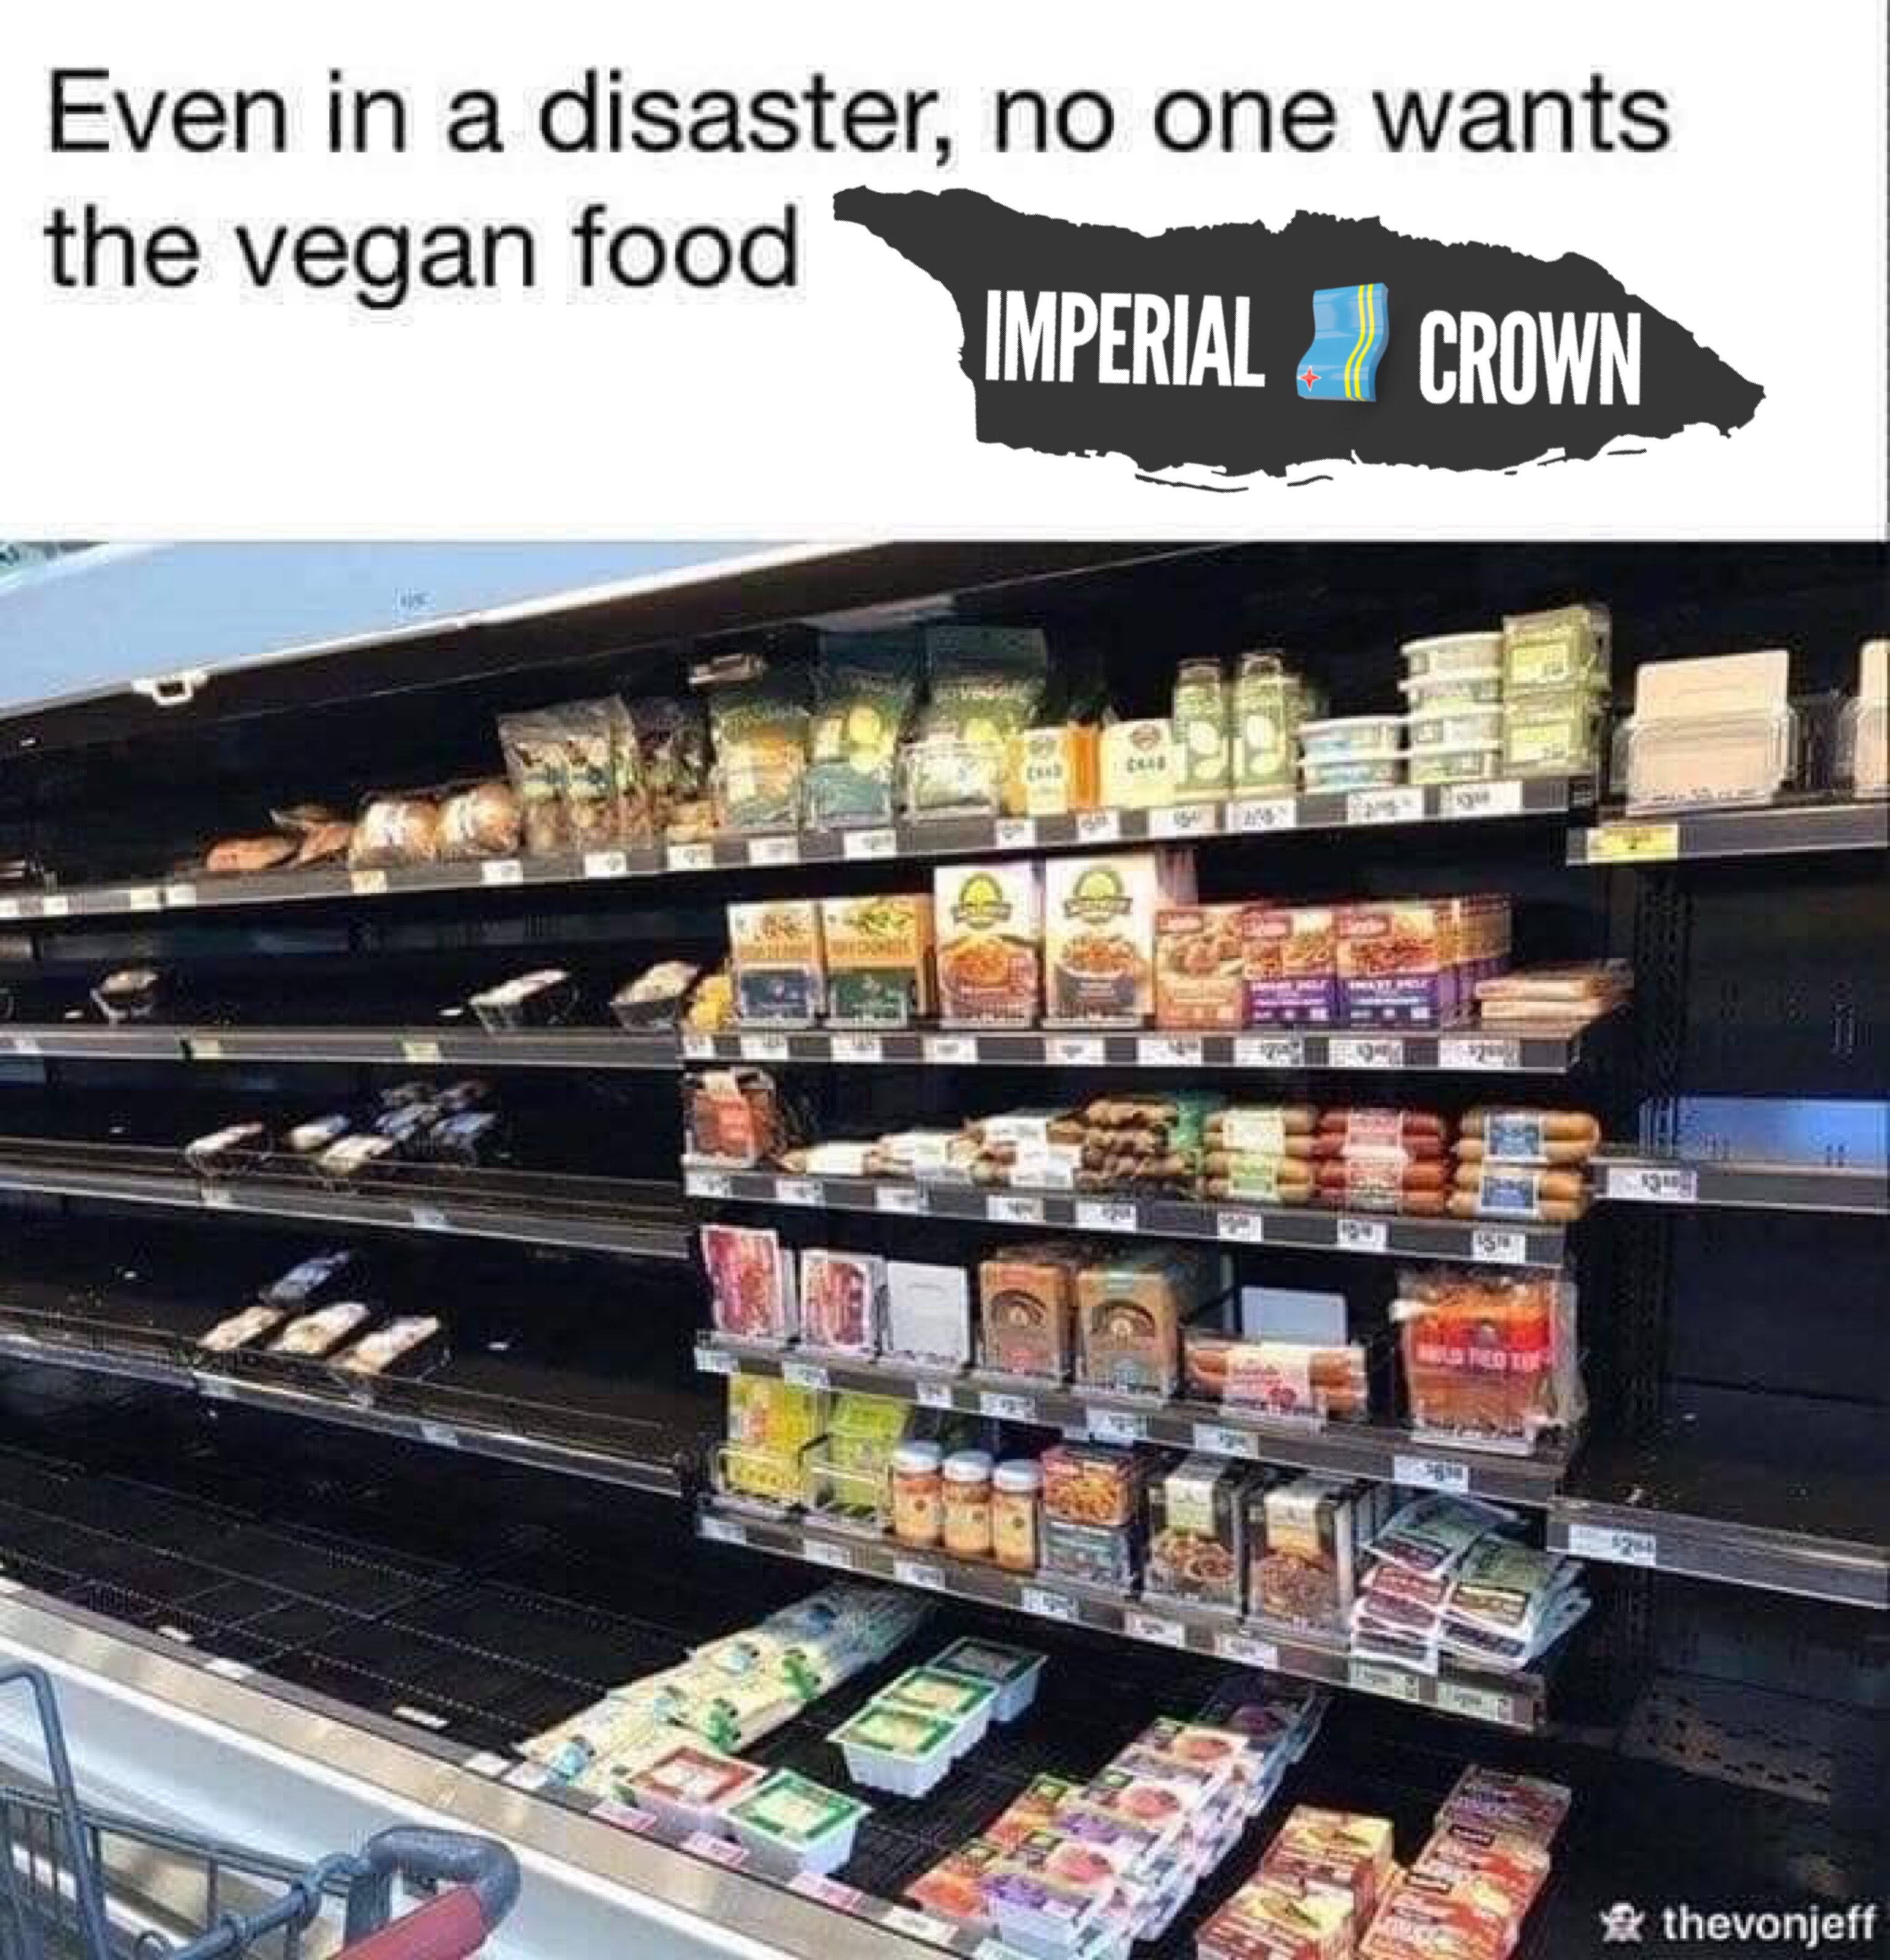 Even in a disaster no one wants the vegan food